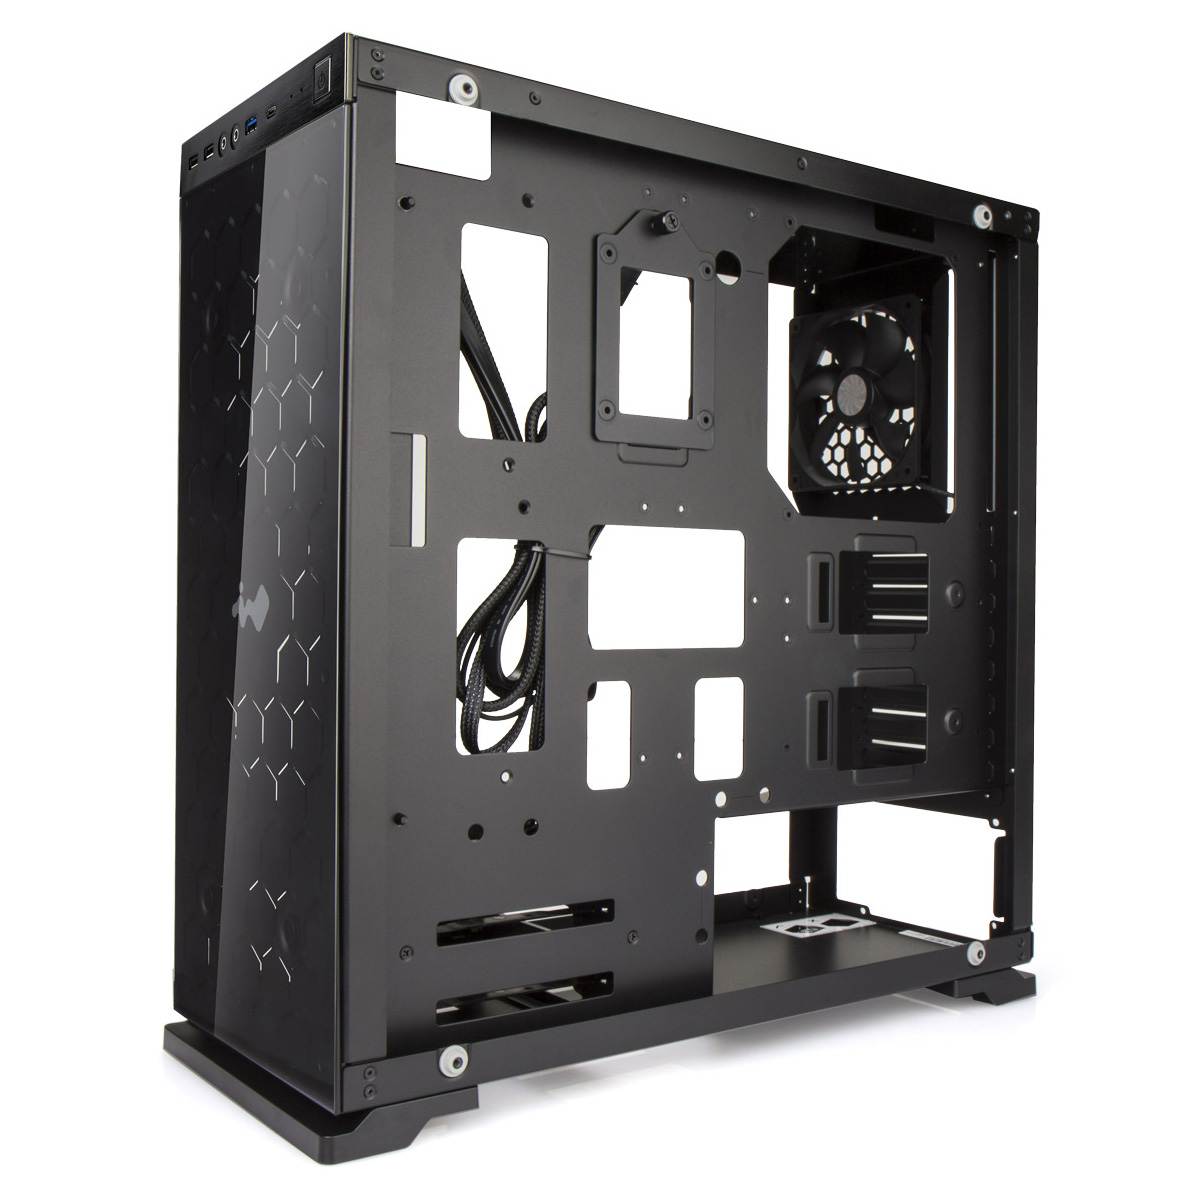 Vỏ case InWin 805 Aluminium Tempered Glass –  Mid-Tower ( Black)